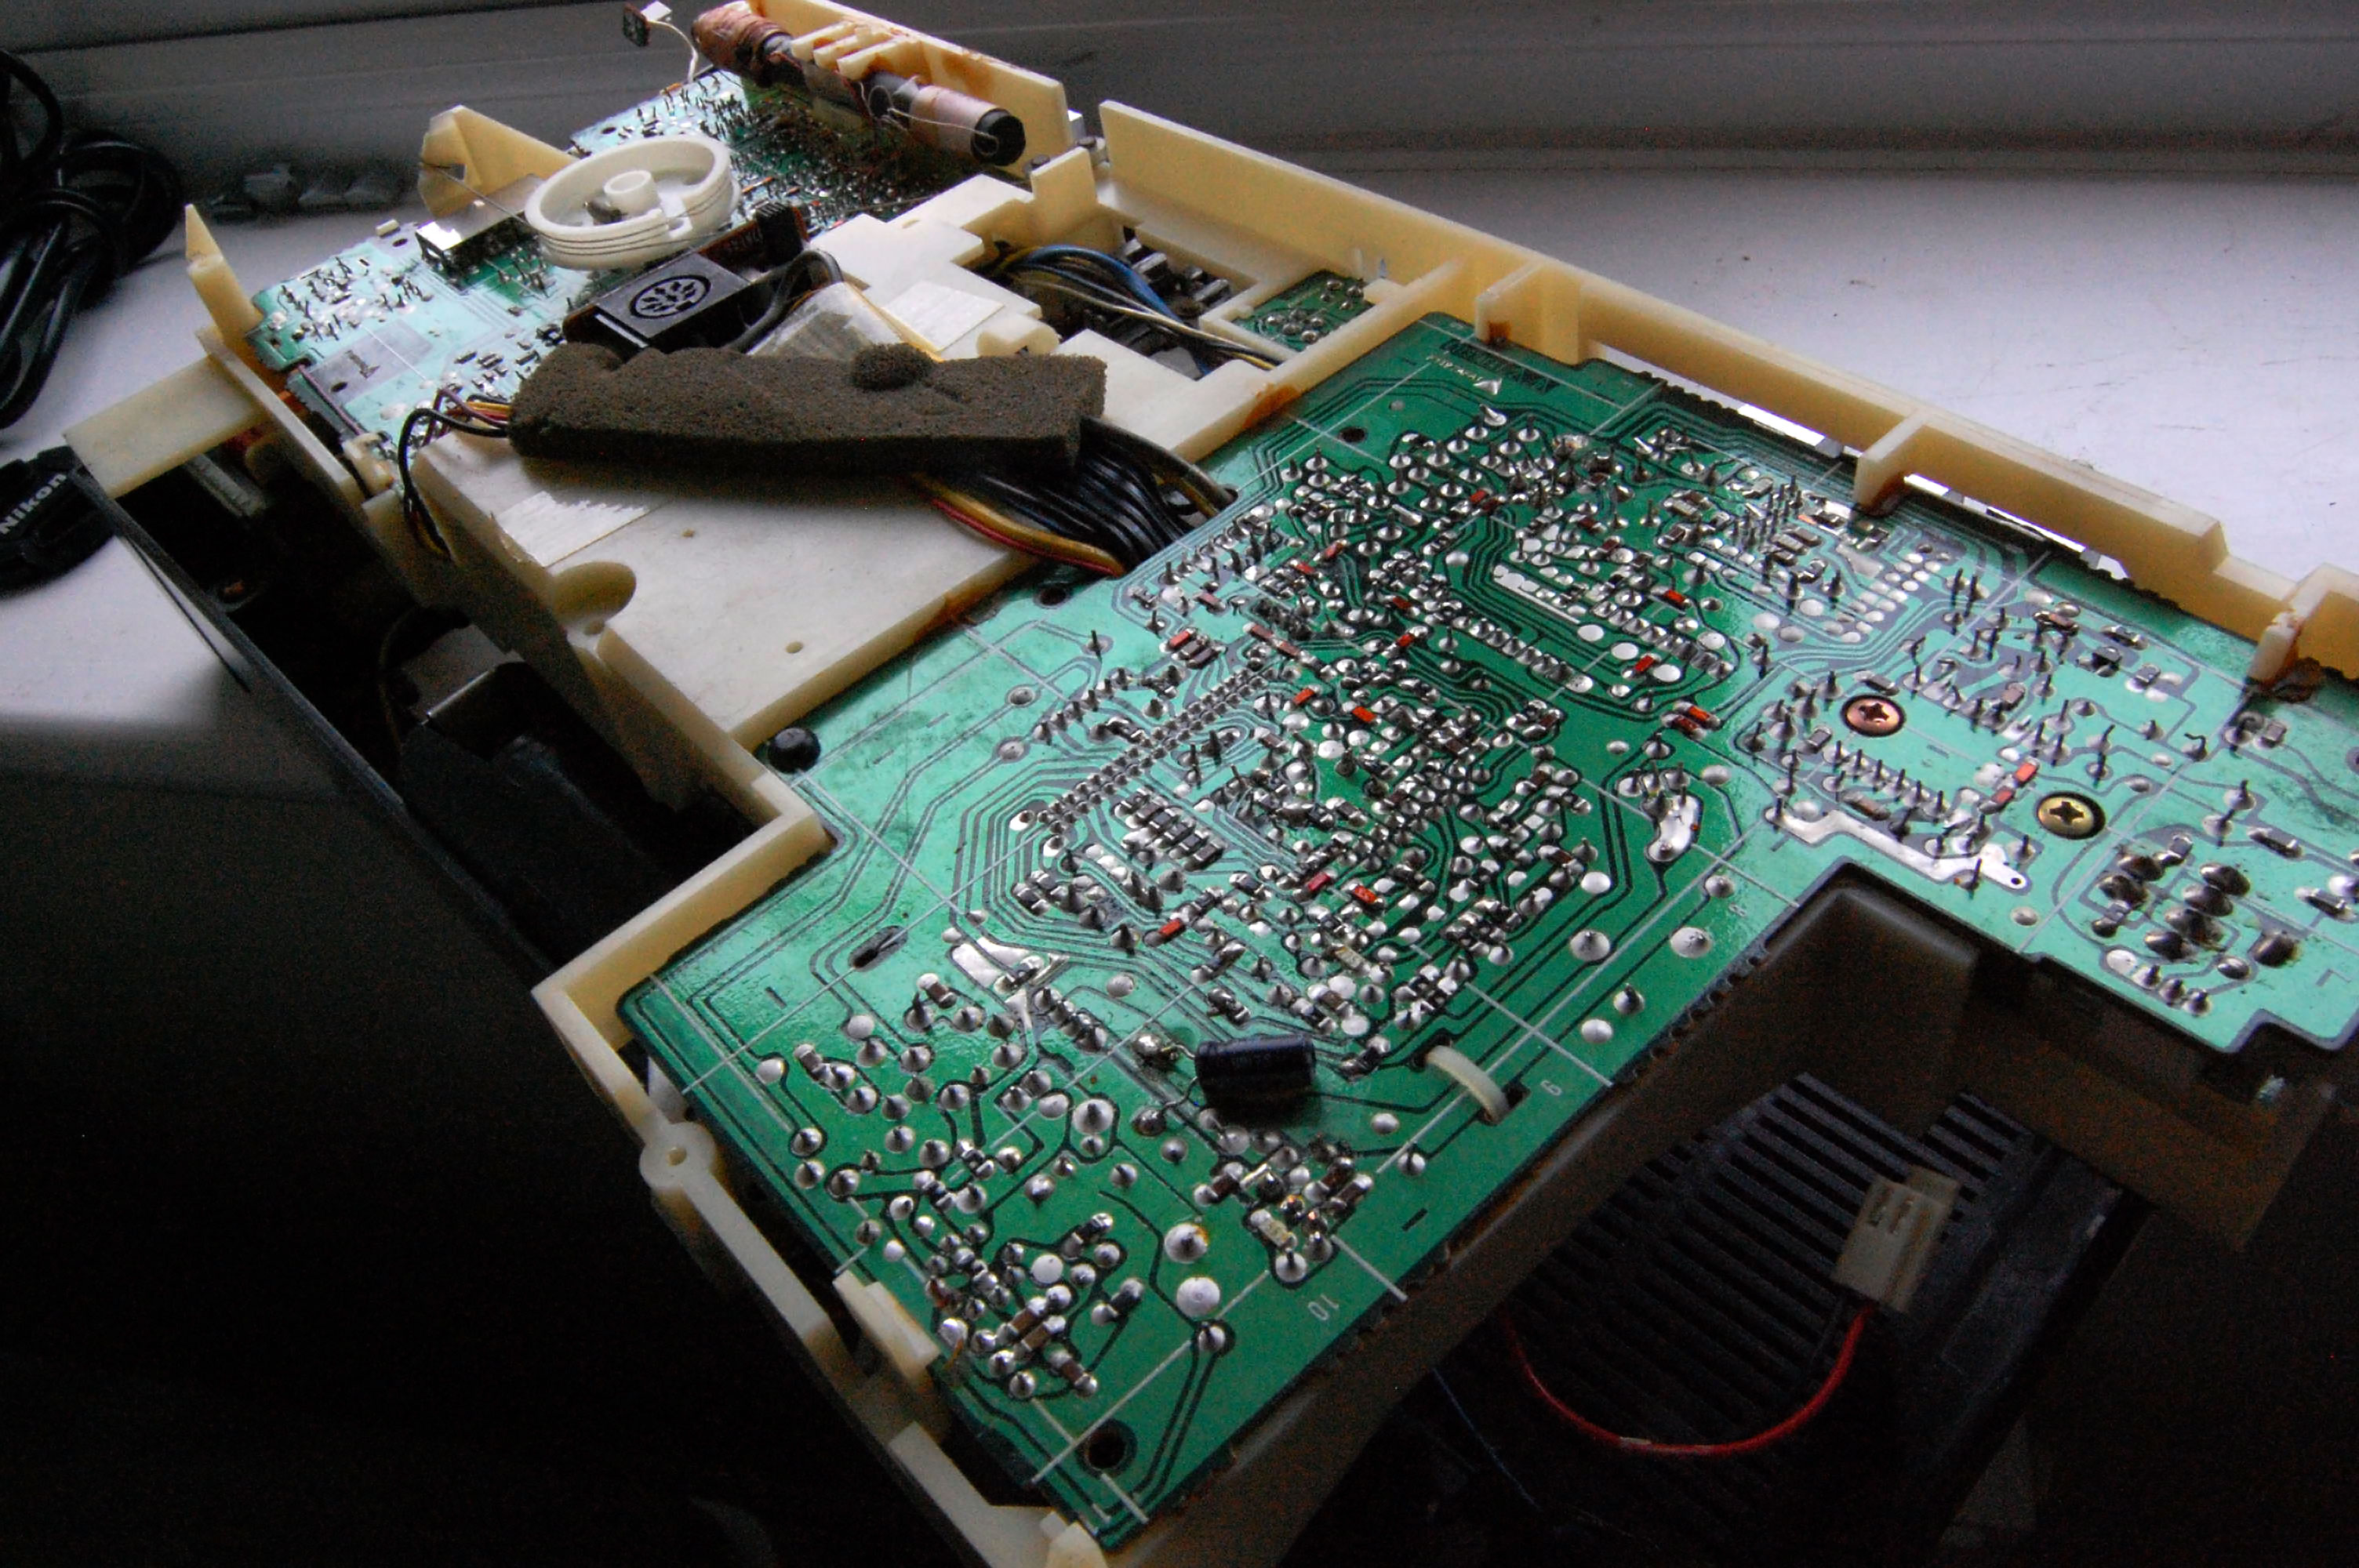 Hacking a line-in socket into an 80s radio and cassette player